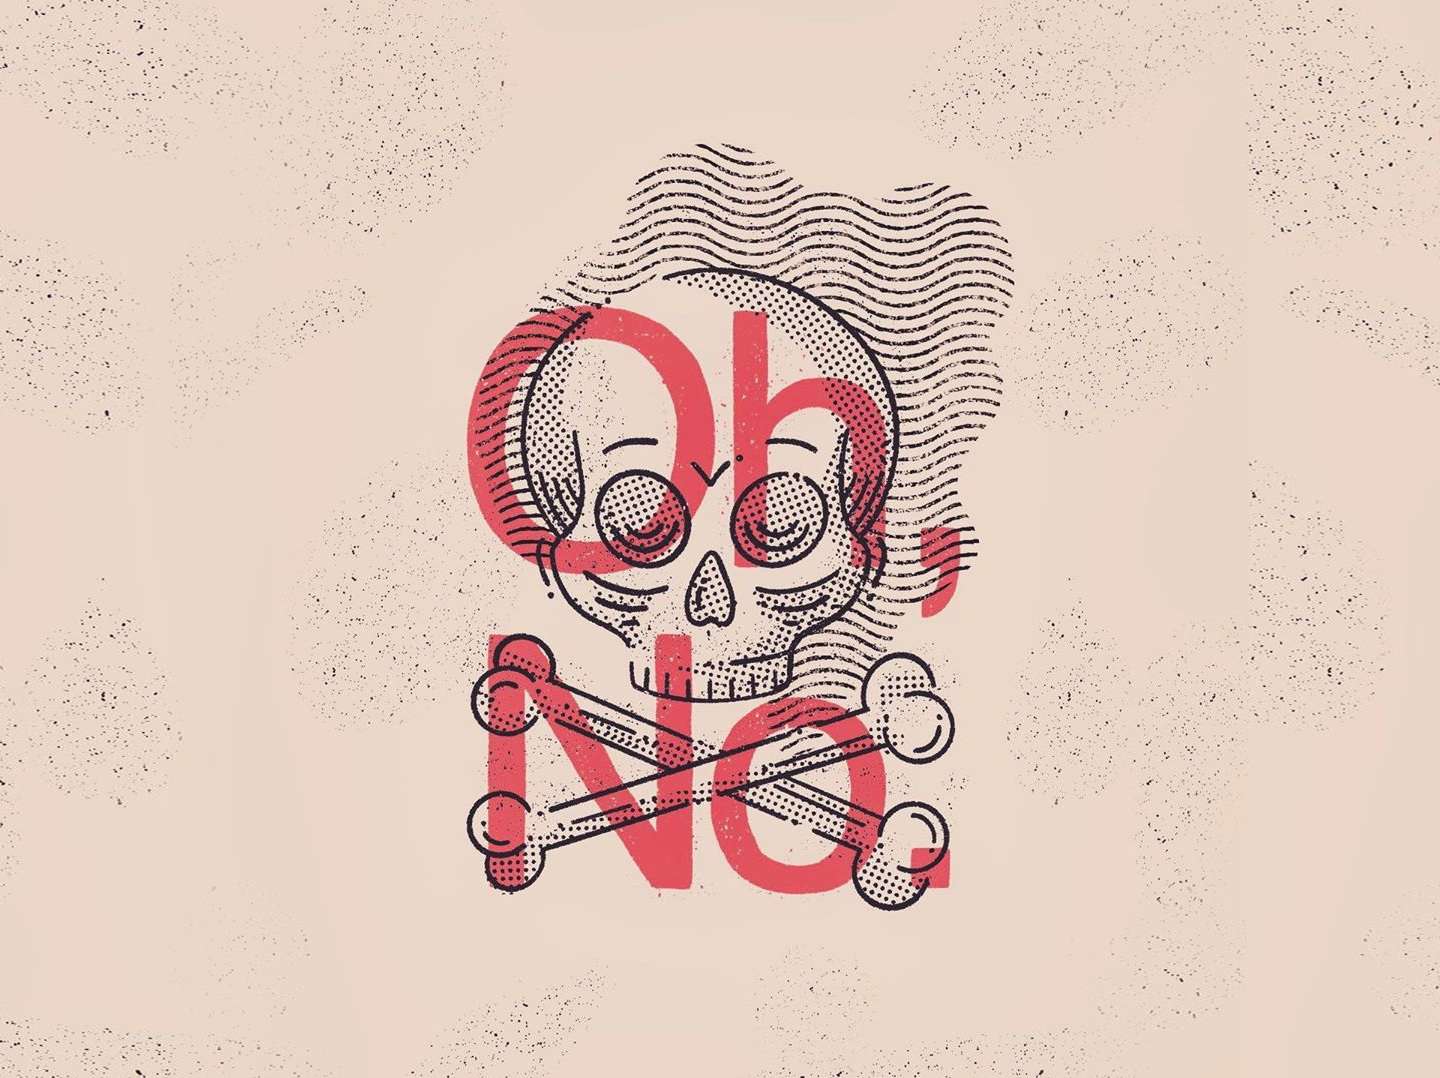 Getting Old dread existential oh no old man skull typography texture illustration